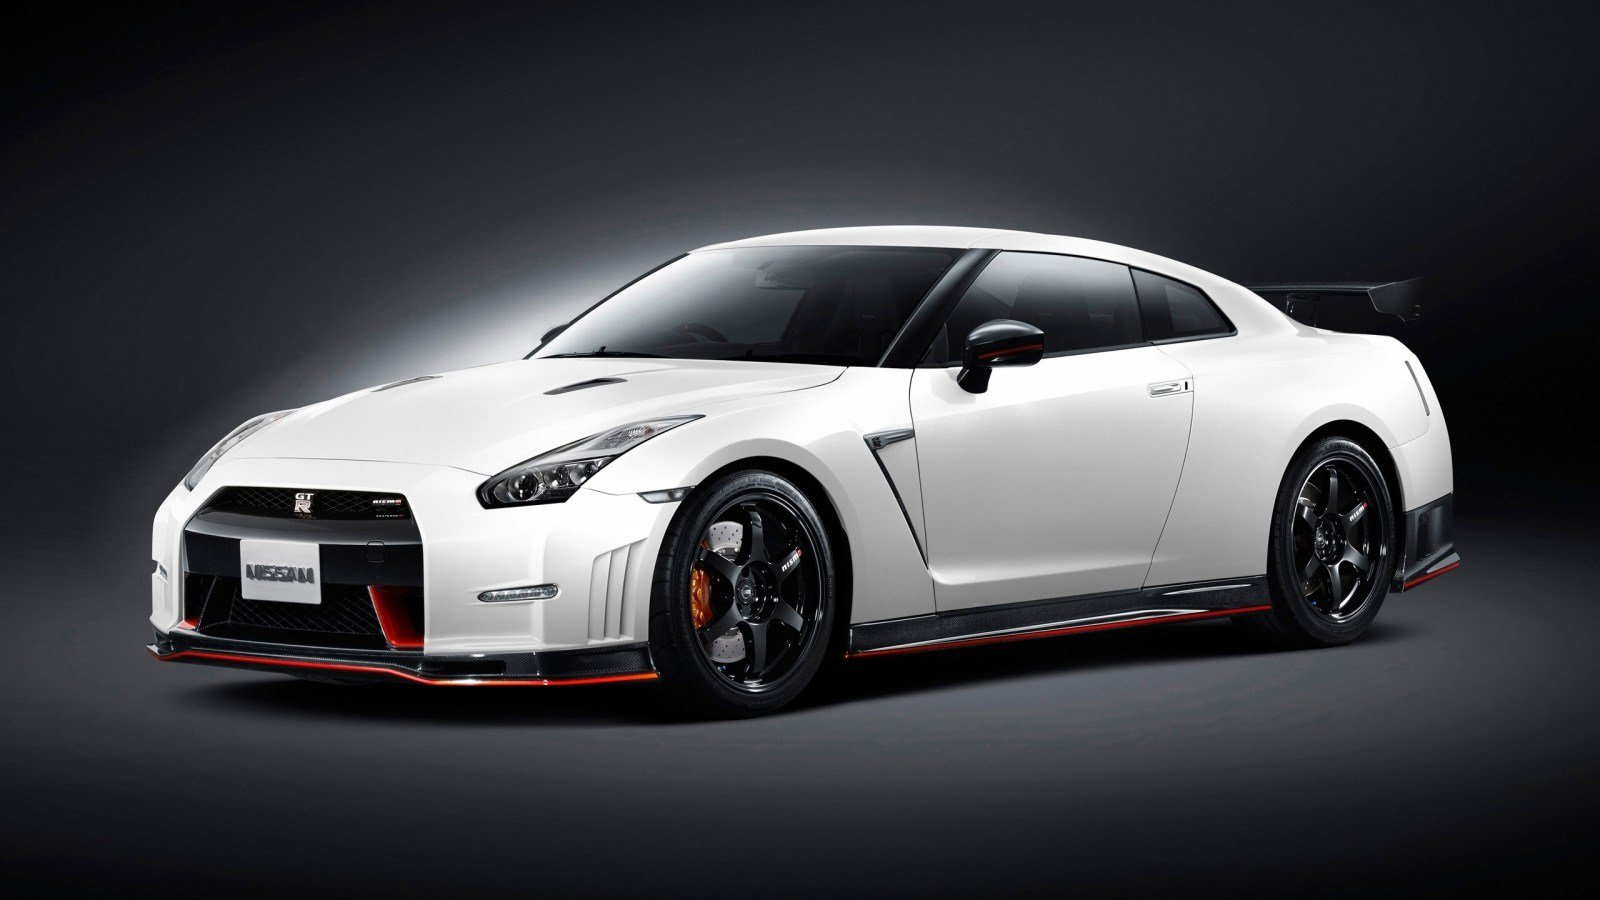 Latest 2015 Nissan Gt R Nismo 3 Wallpaper Hd Car Wallpapers Free Download